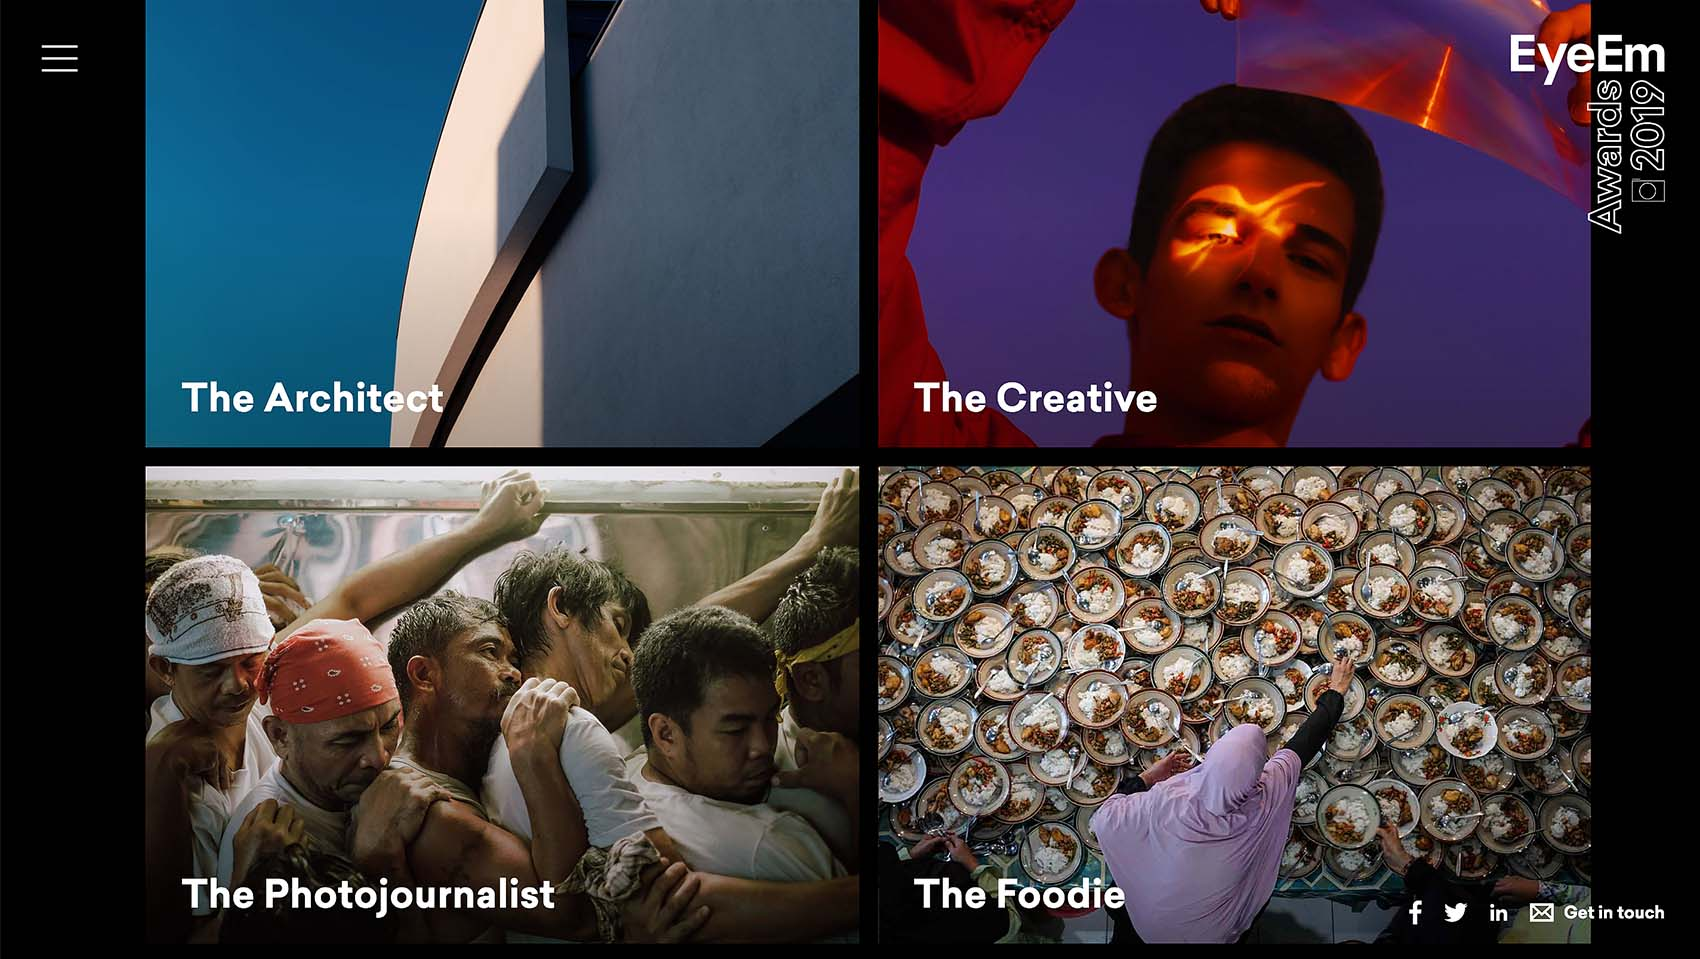 EyeEm Photo Awards 2019